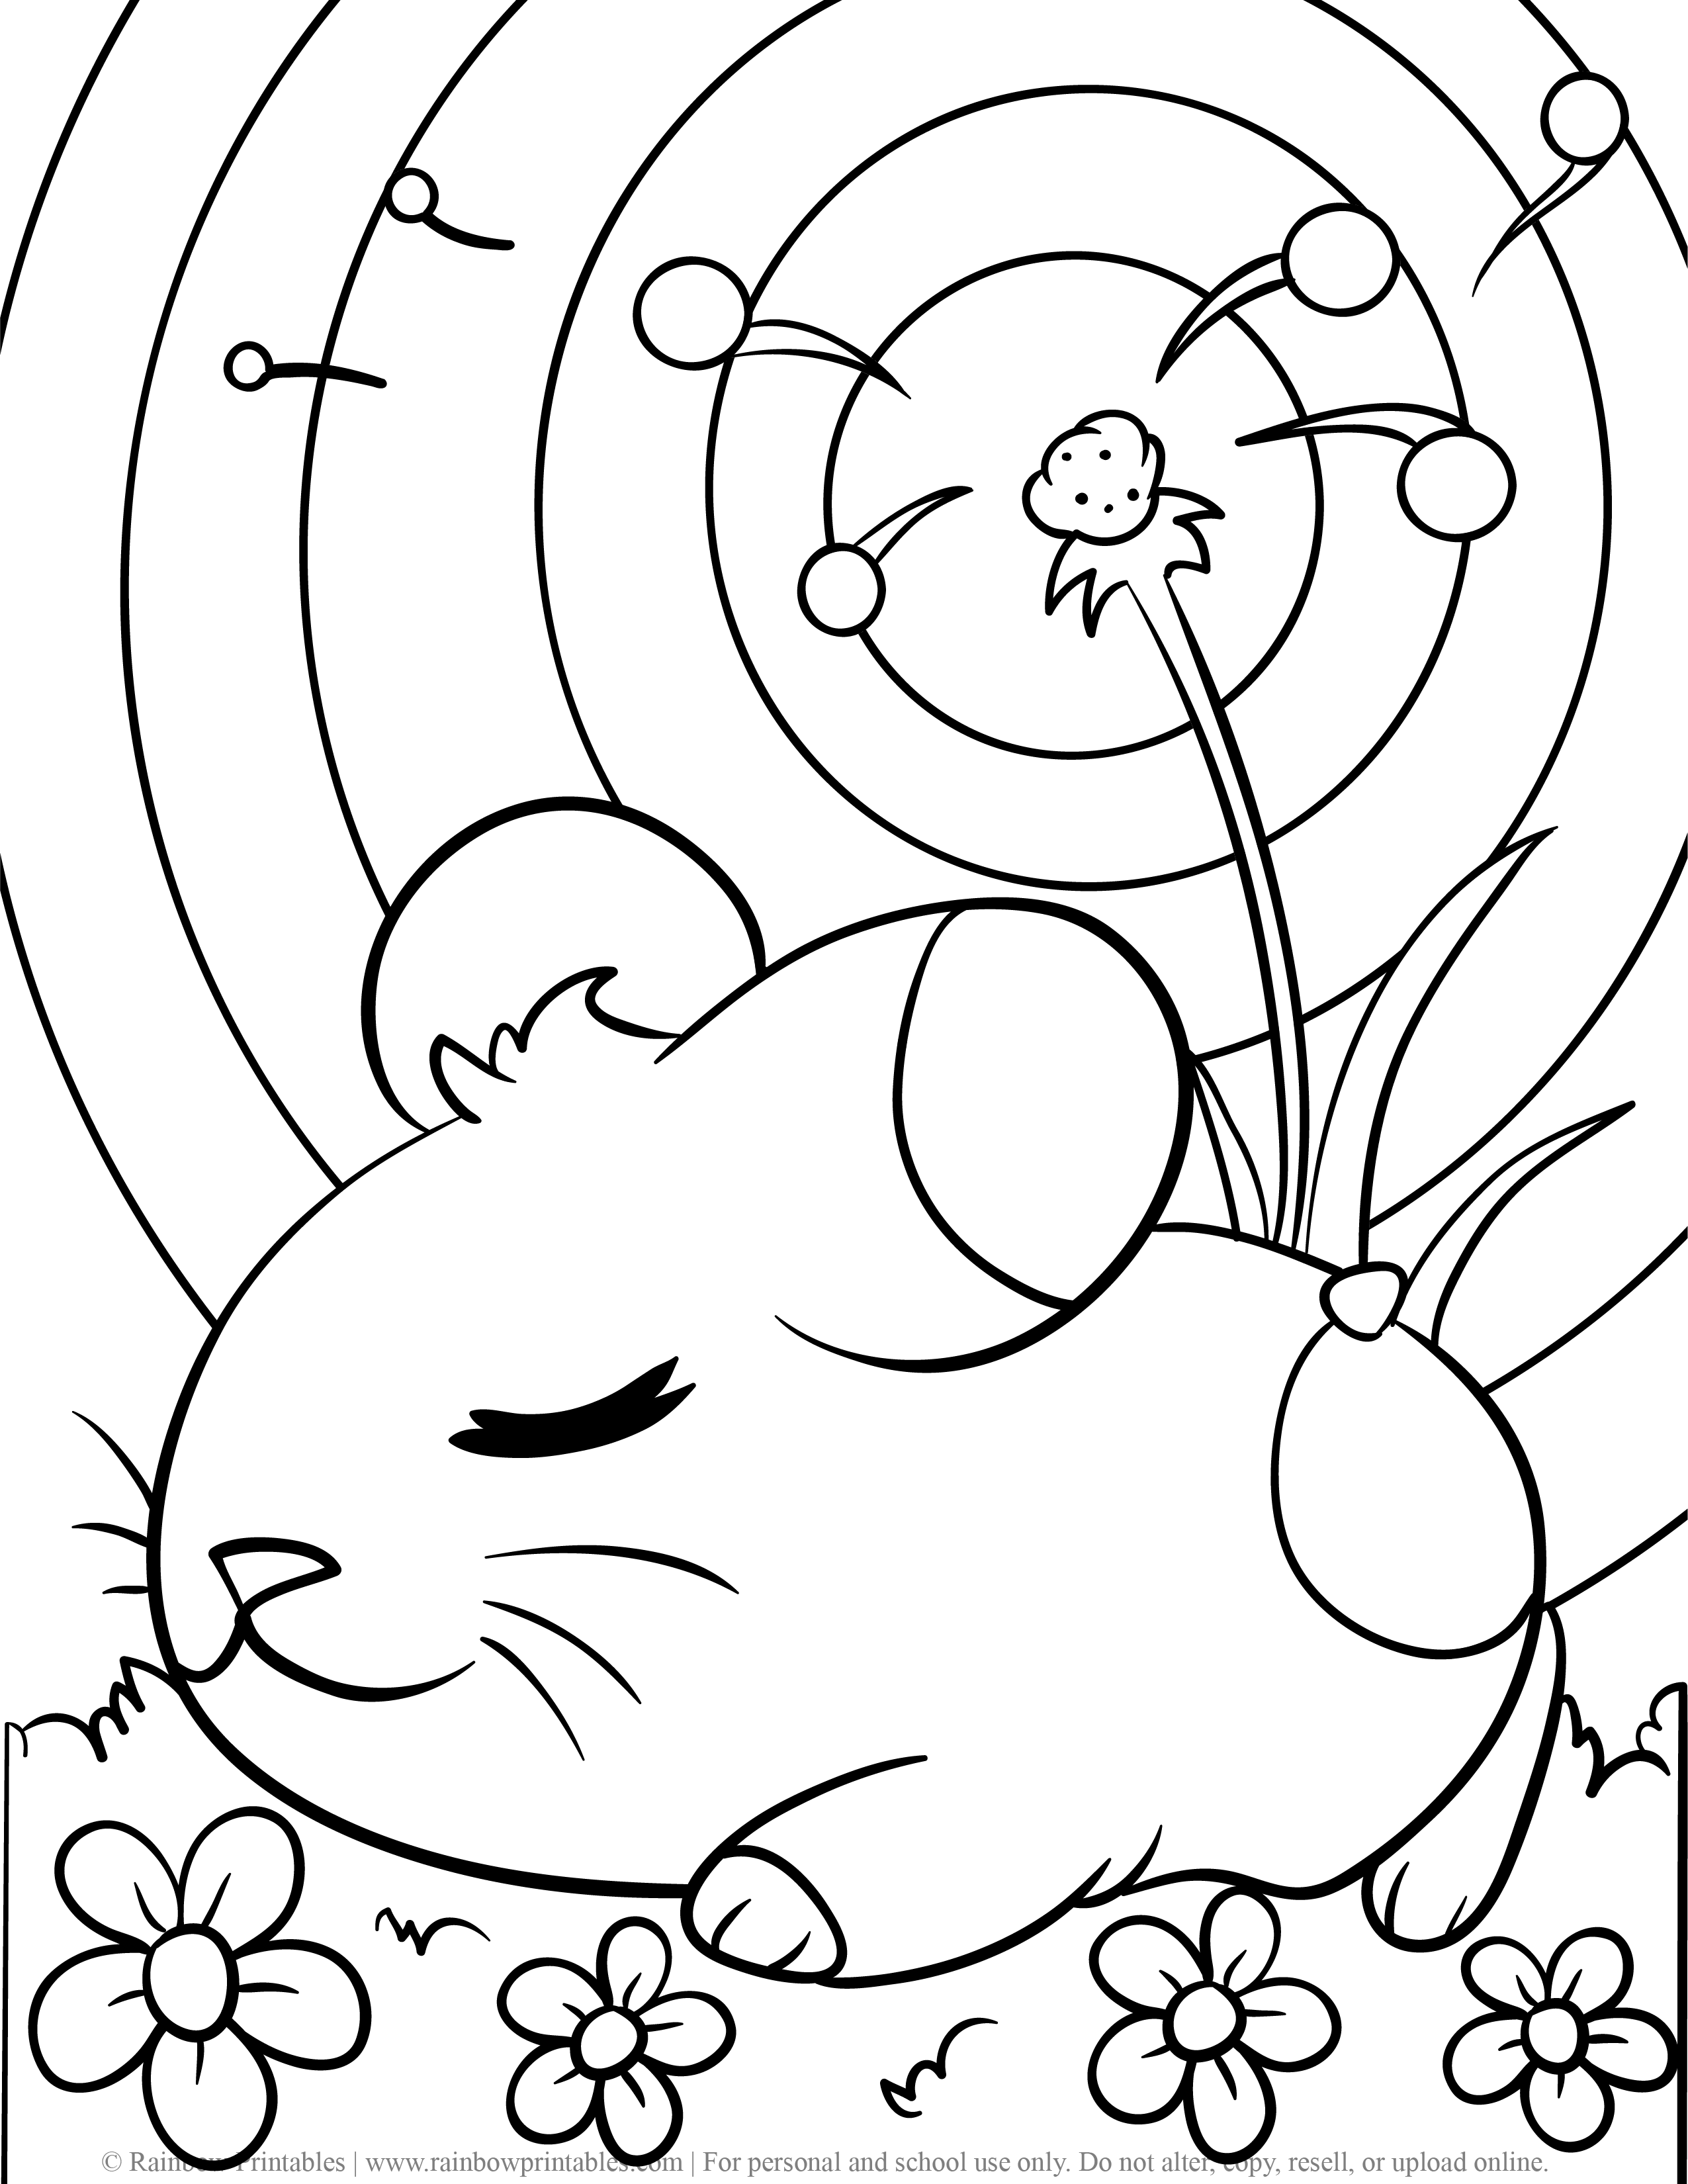 Cute Sleeping Hamster Rodent Guinea Pig Bed of Flowers Dandelion Coloring Page for Kids